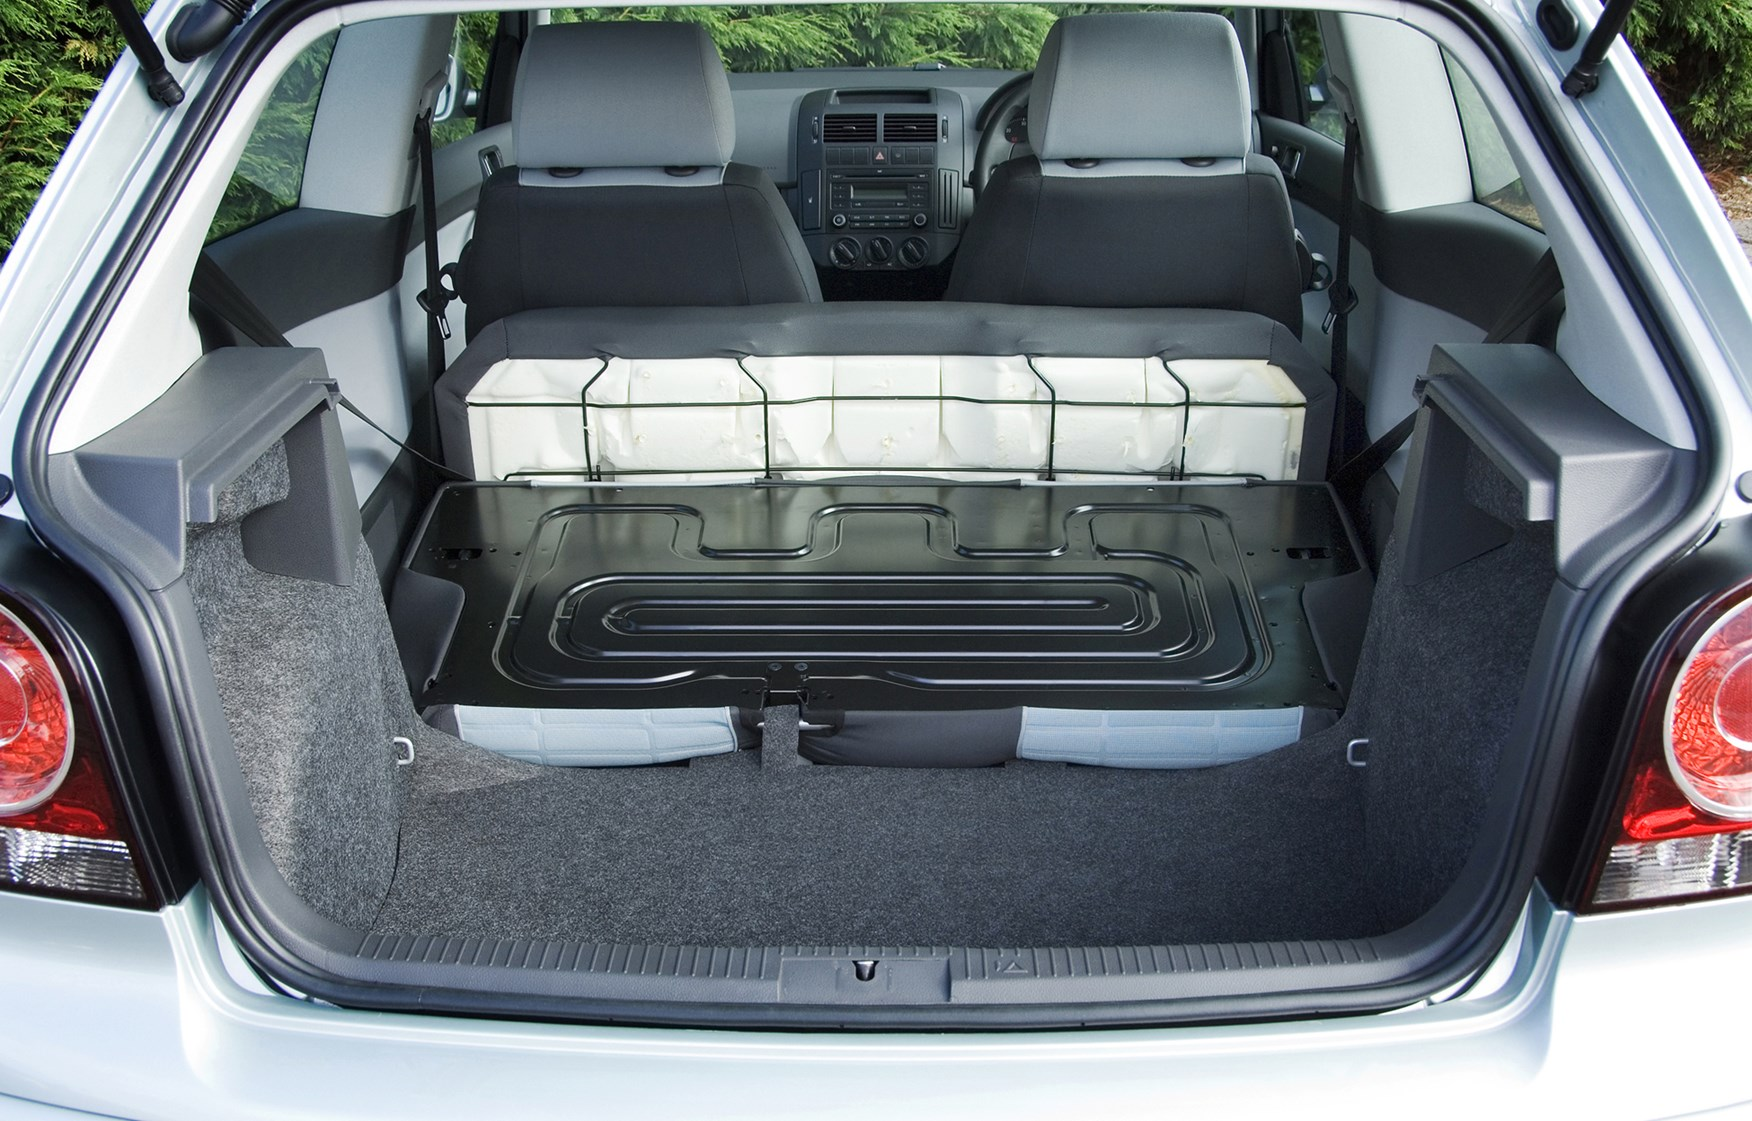 volkswagen polo hatchback 2002 2009 photos parkers. Black Bedroom Furniture Sets. Home Design Ideas